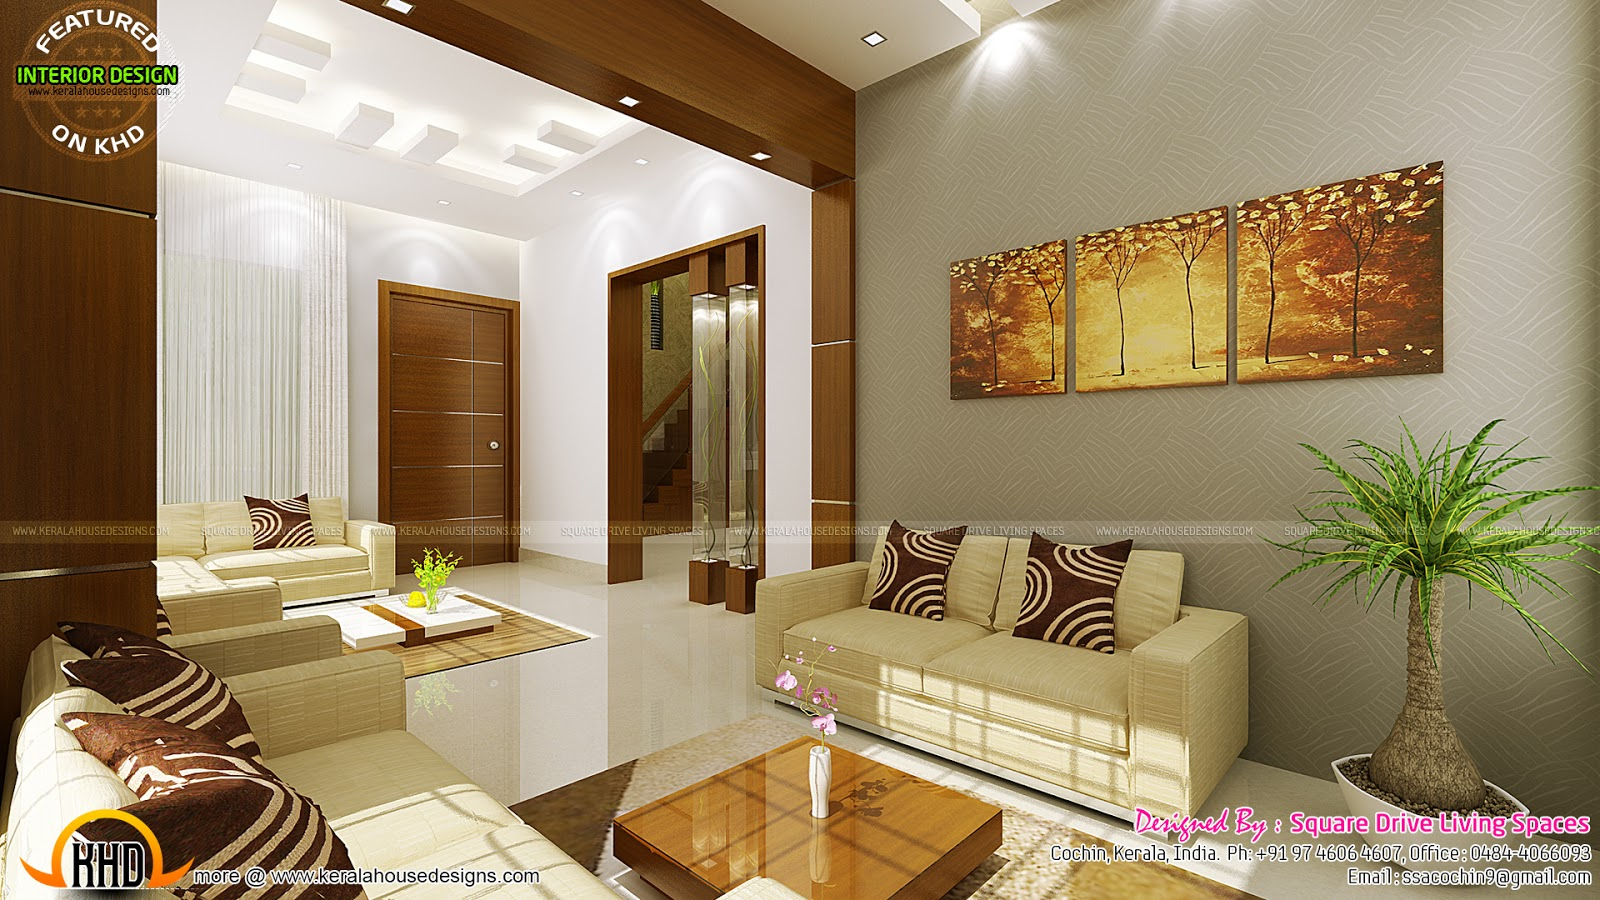 Contemporary kitchen dining and living room kerala home for Room interior ideas